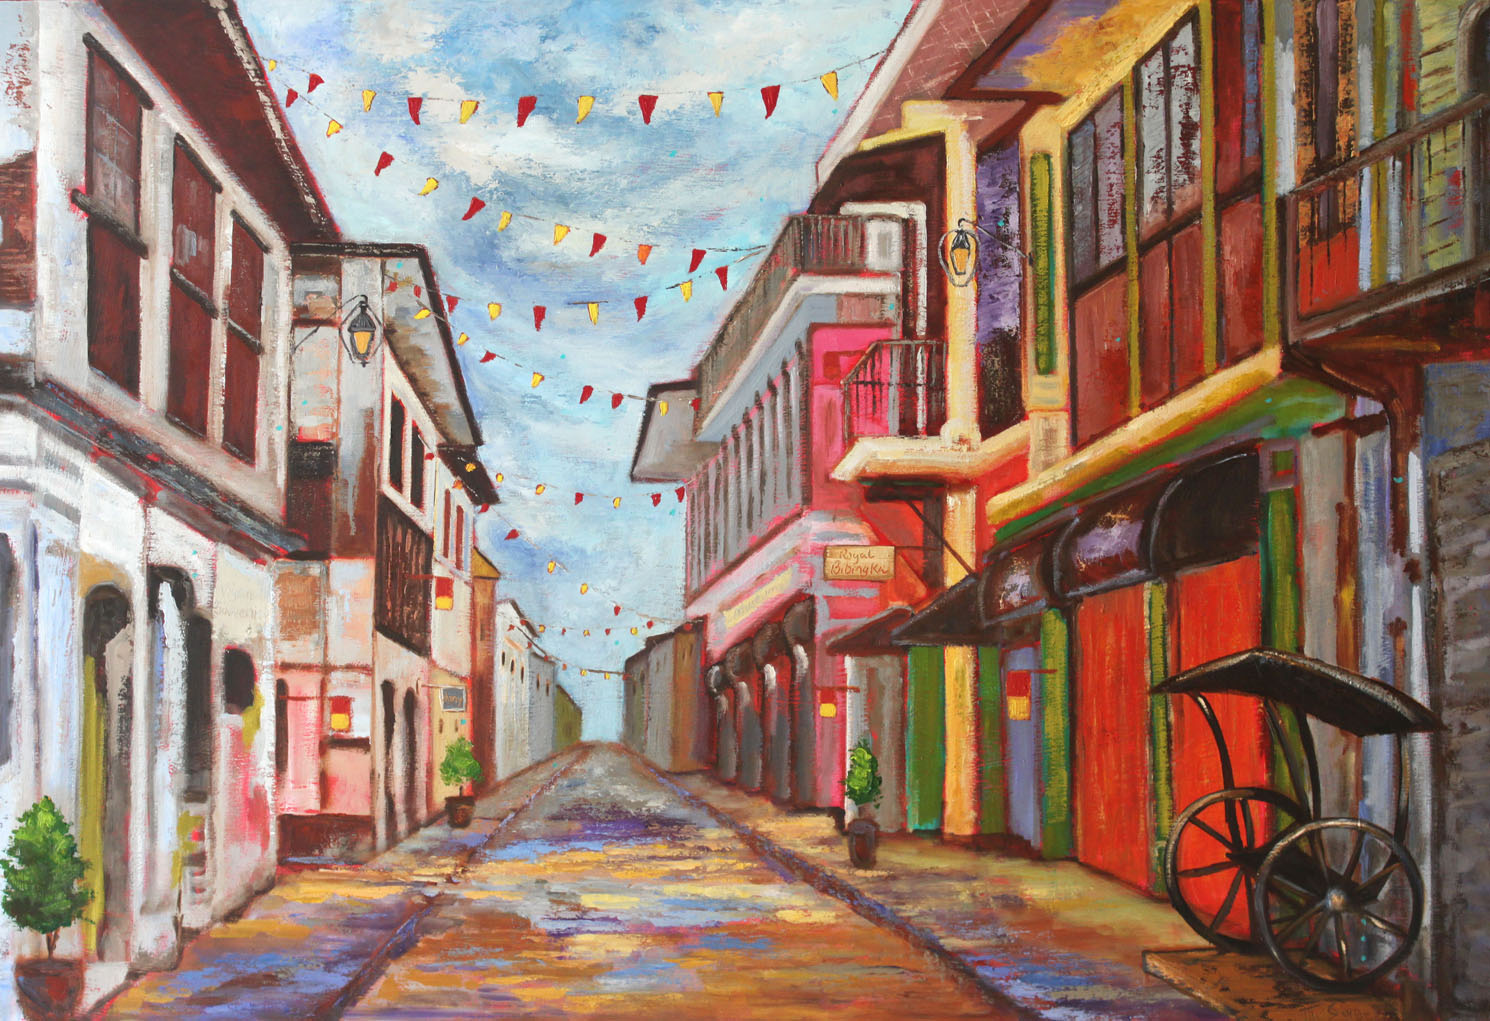 Fiesta sa Barrio by Marissa Sweet